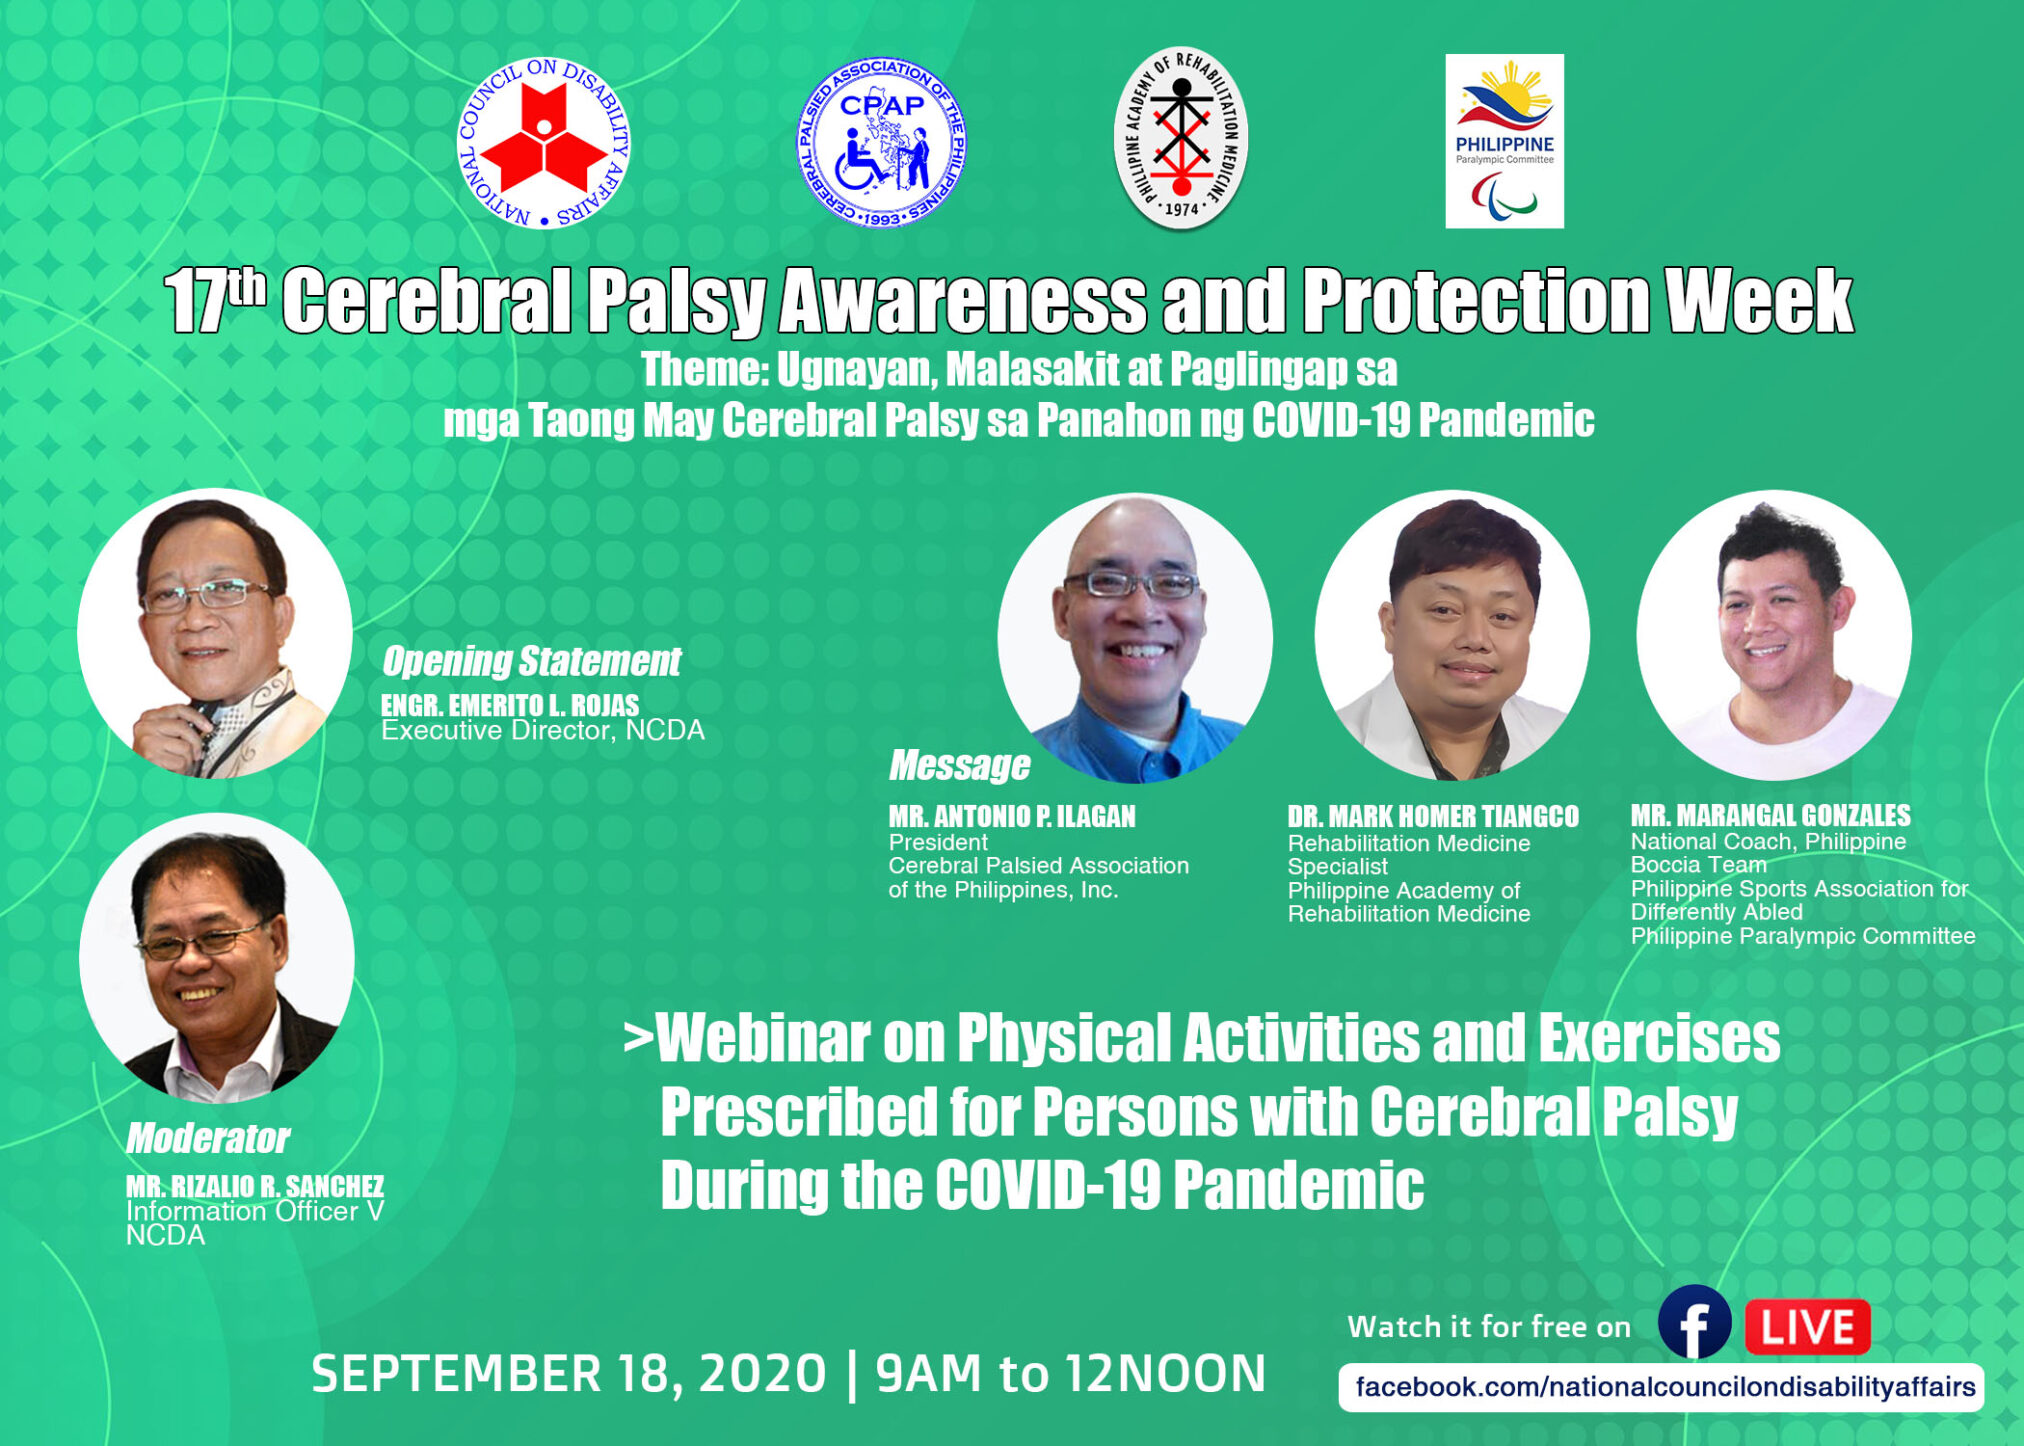 Webinar on Physical Activities and Exercises Prescribed for Persons with Cerebral Palsy During the Covid-19 Pandemic